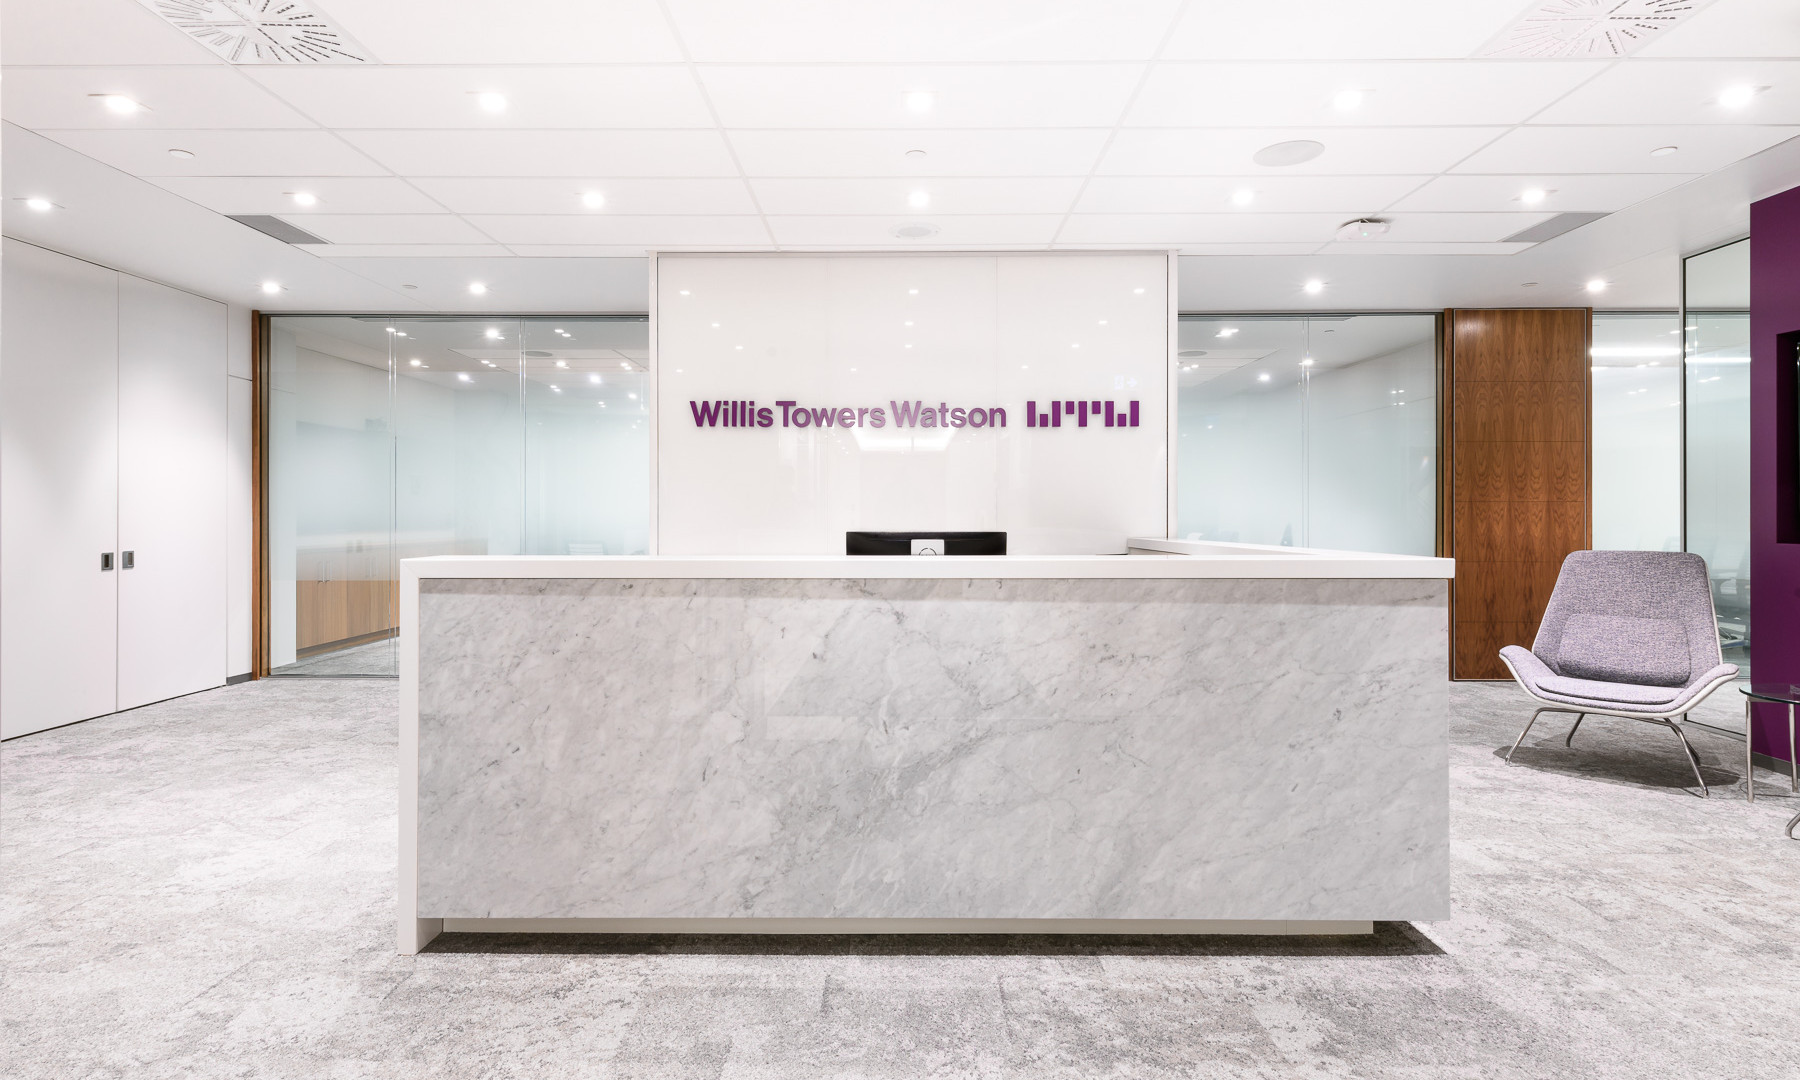 Willis Towers Watson reception desk